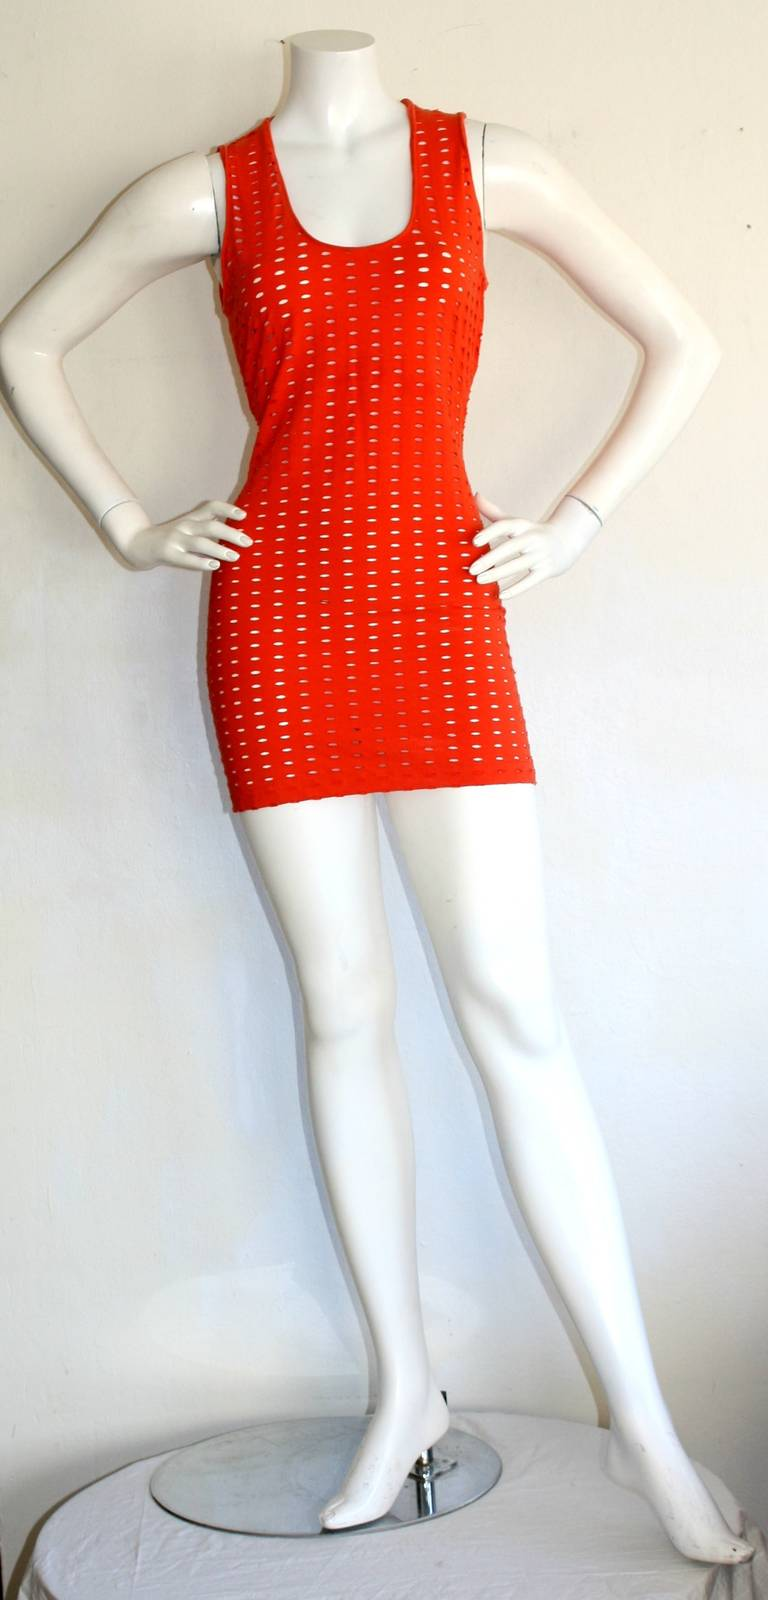 Gianni Versace Couture Vintage Red Cut - Out Dress 1990s Pre - Death 6